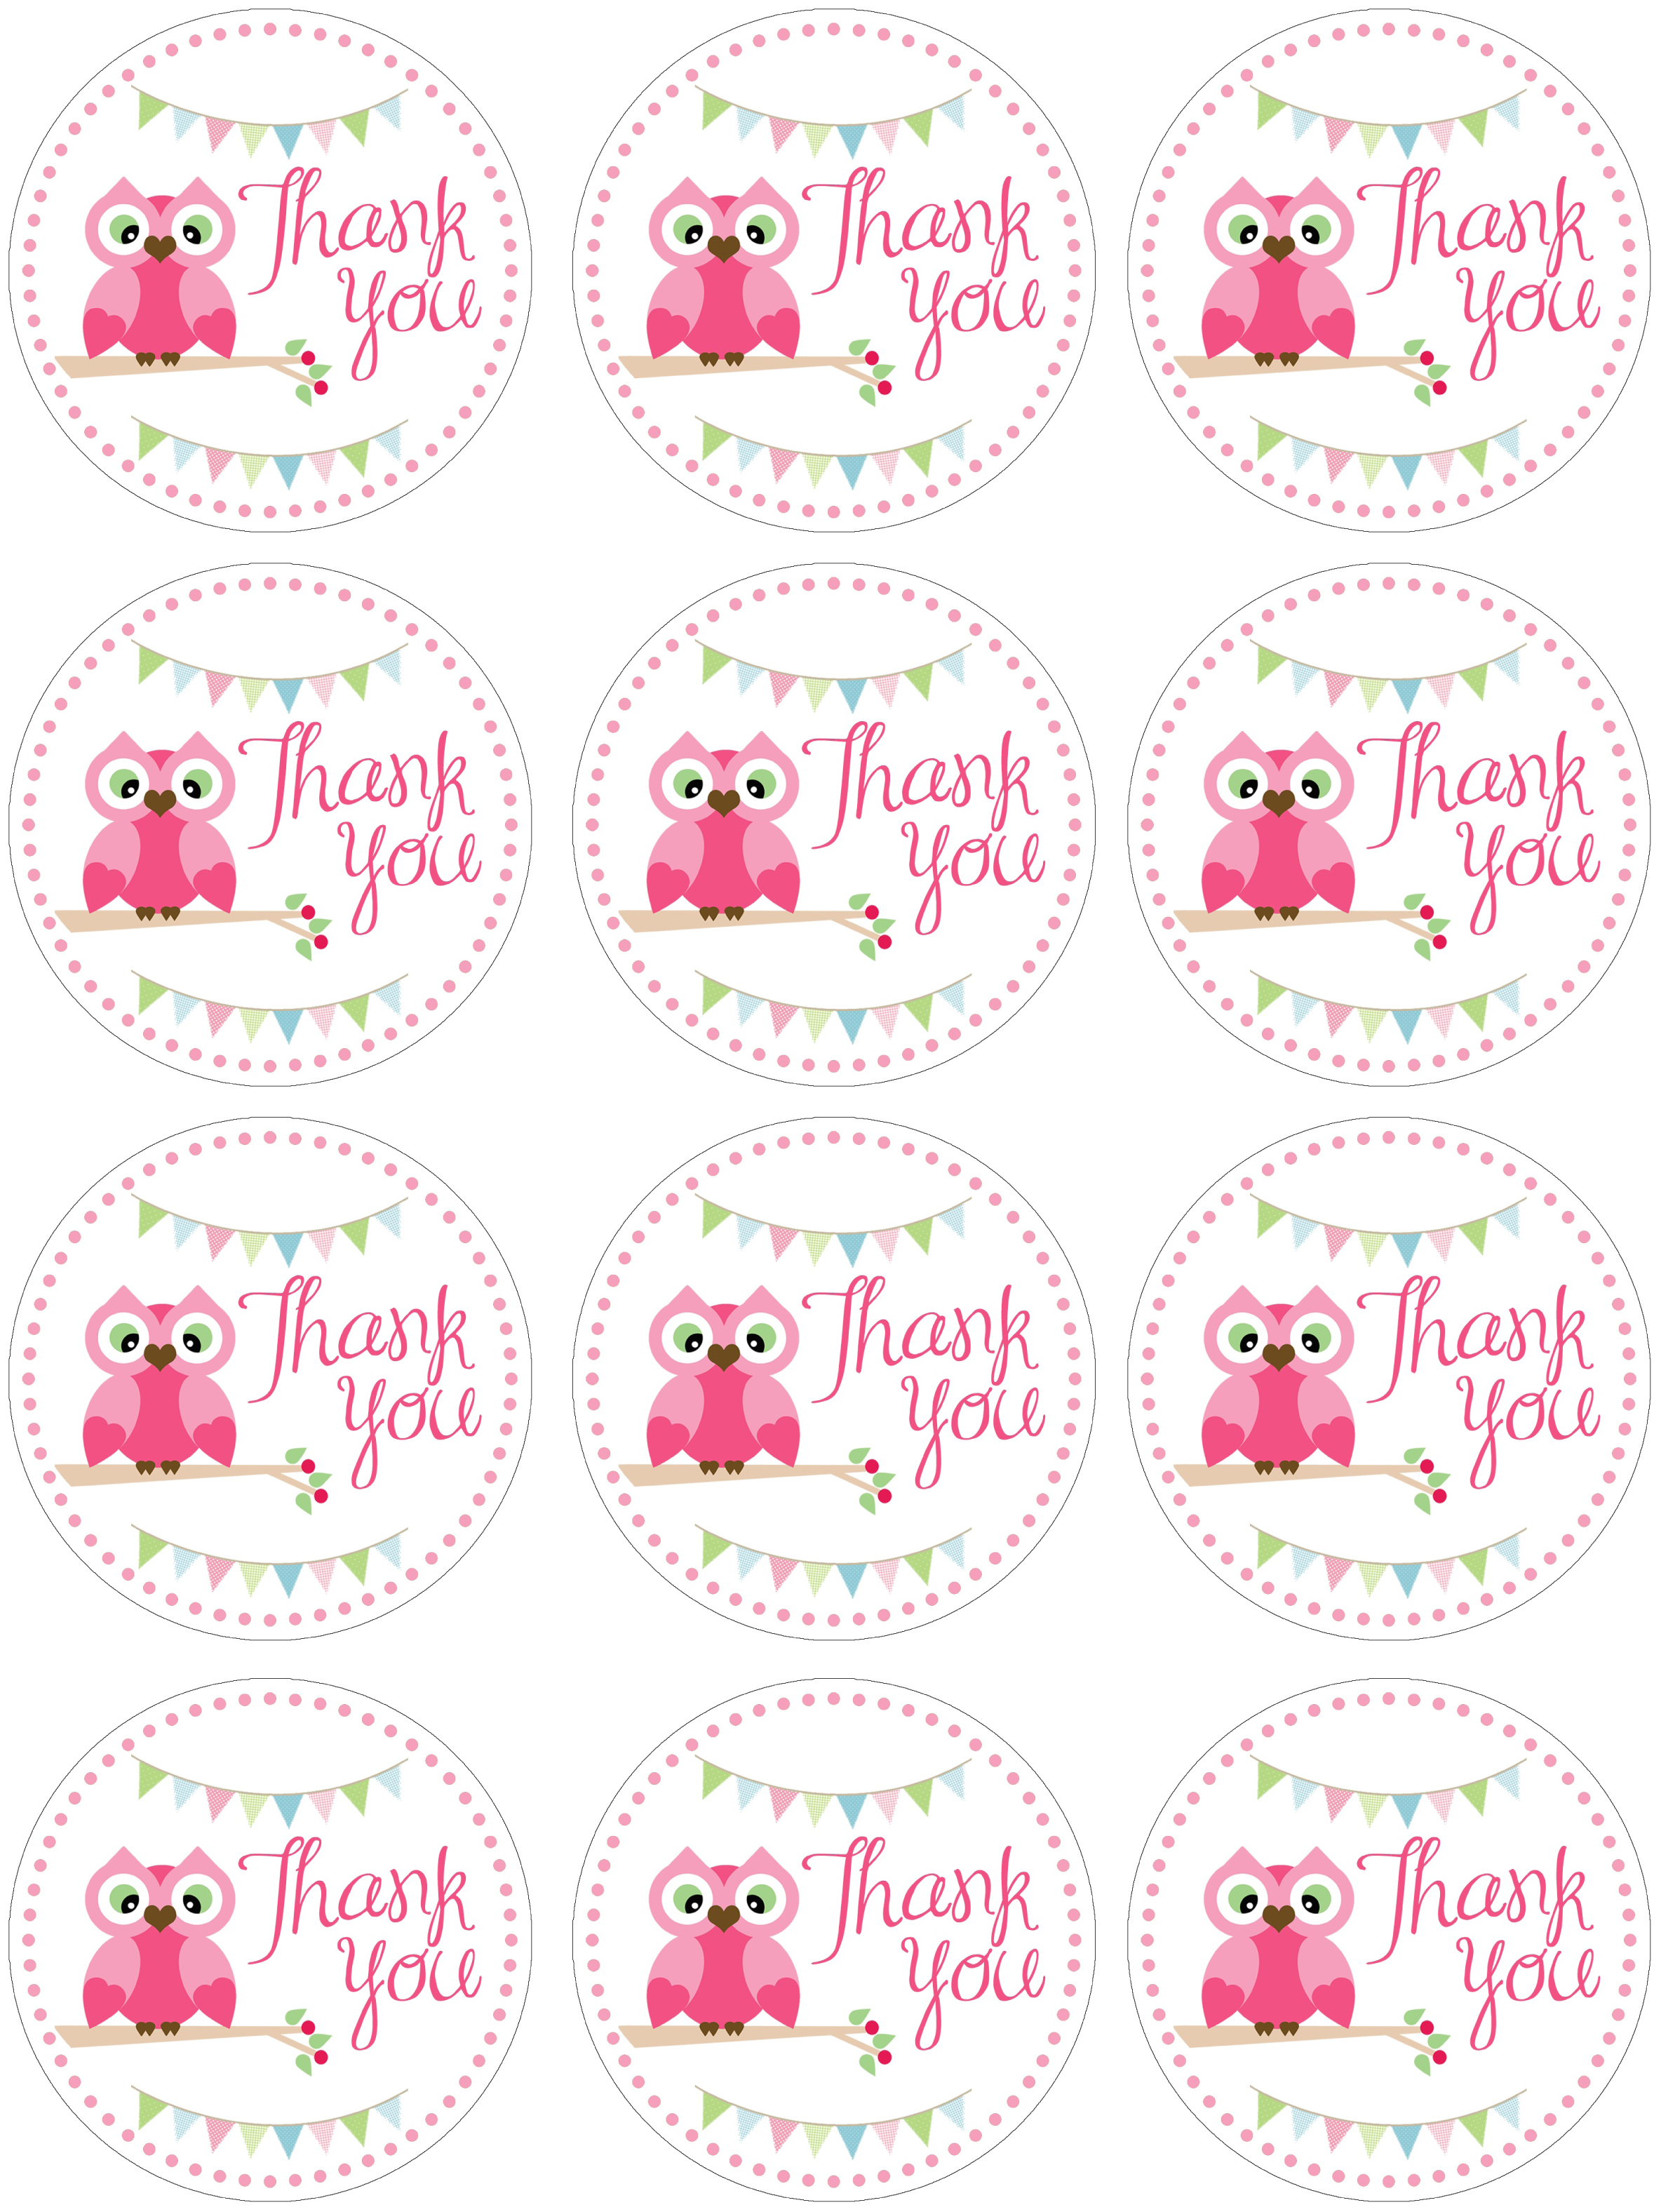 4 Images of Free Printable Birthday Thank You Tags